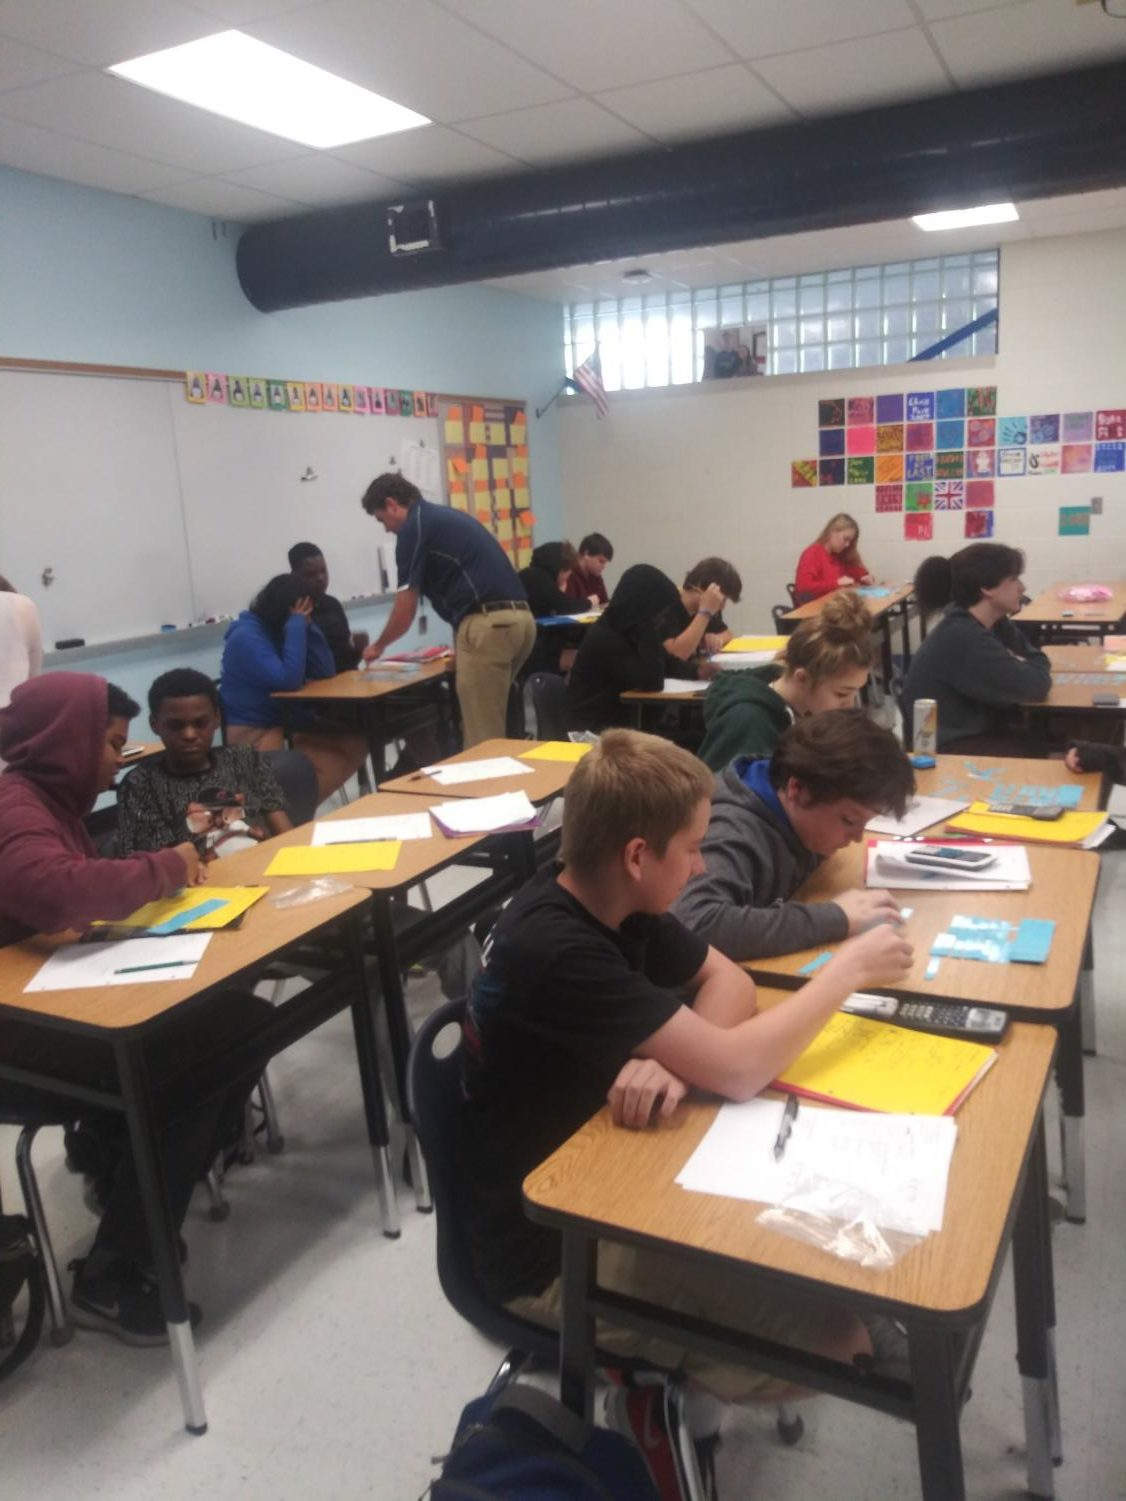 Students work in Jamie Dresser's third block Geometry class. Next year students will likely have to wait till January to take their first semester finals.